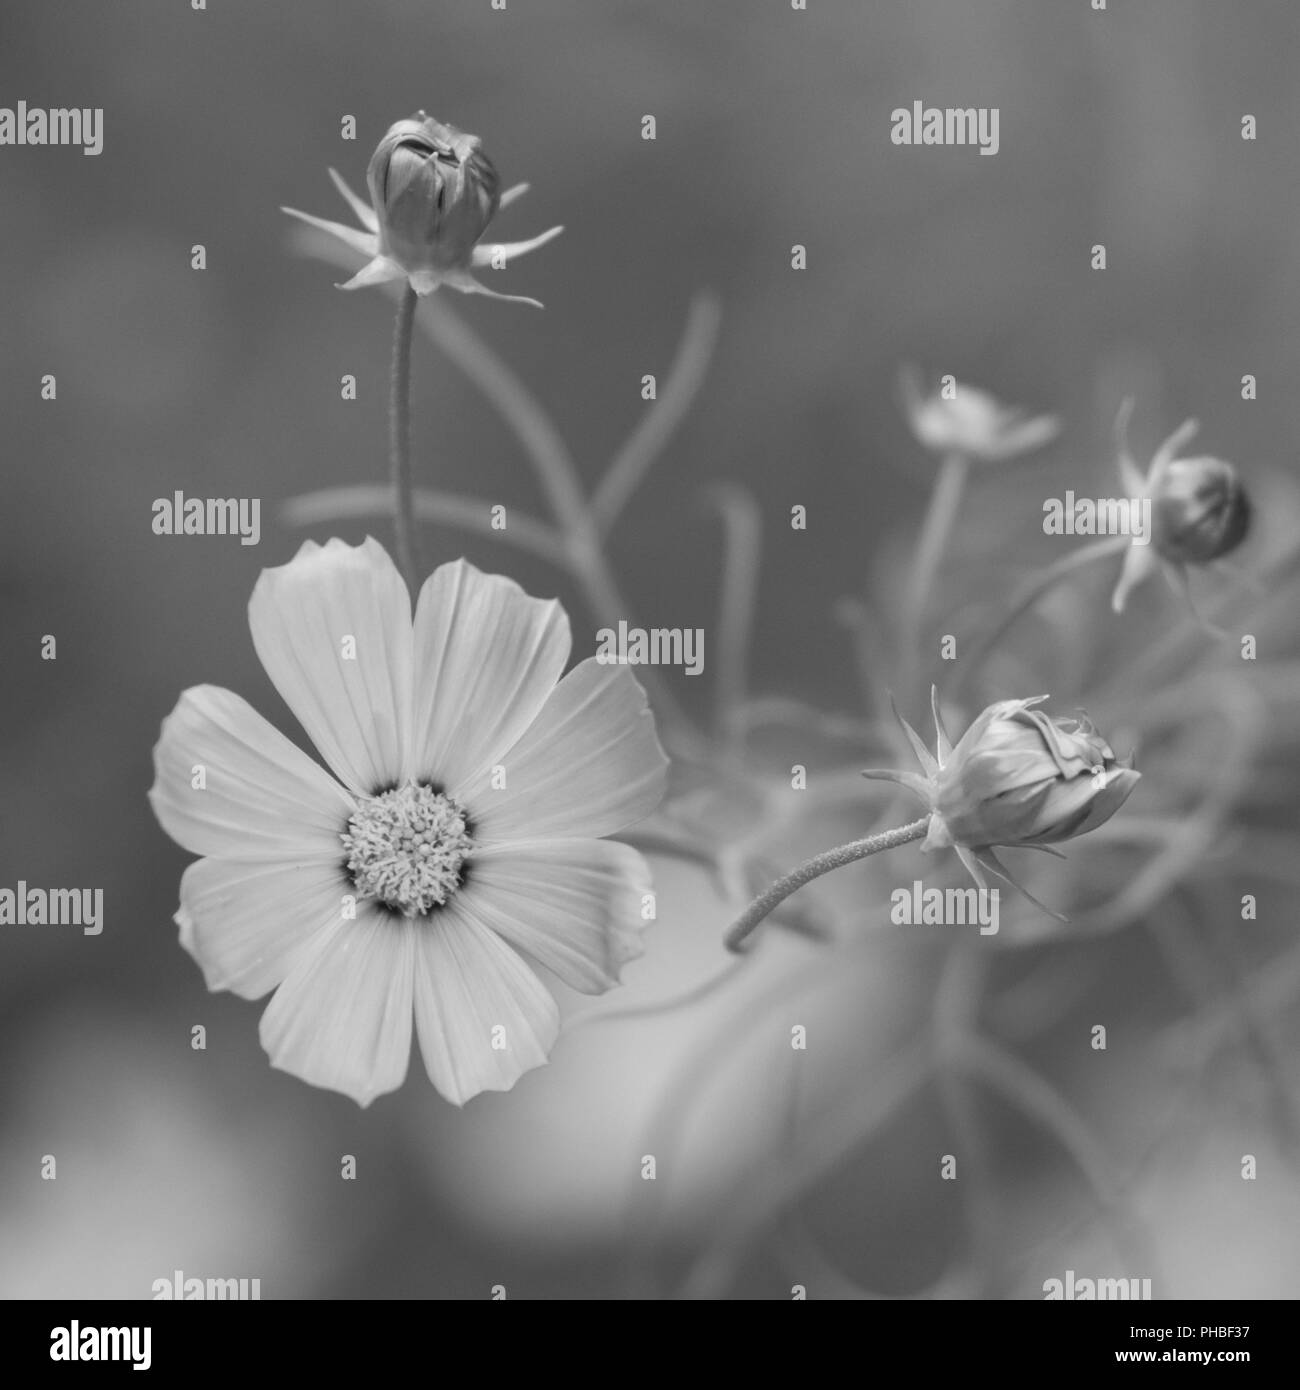 Beautiful Flower White Petals Open Close Bw Artistic Flowers